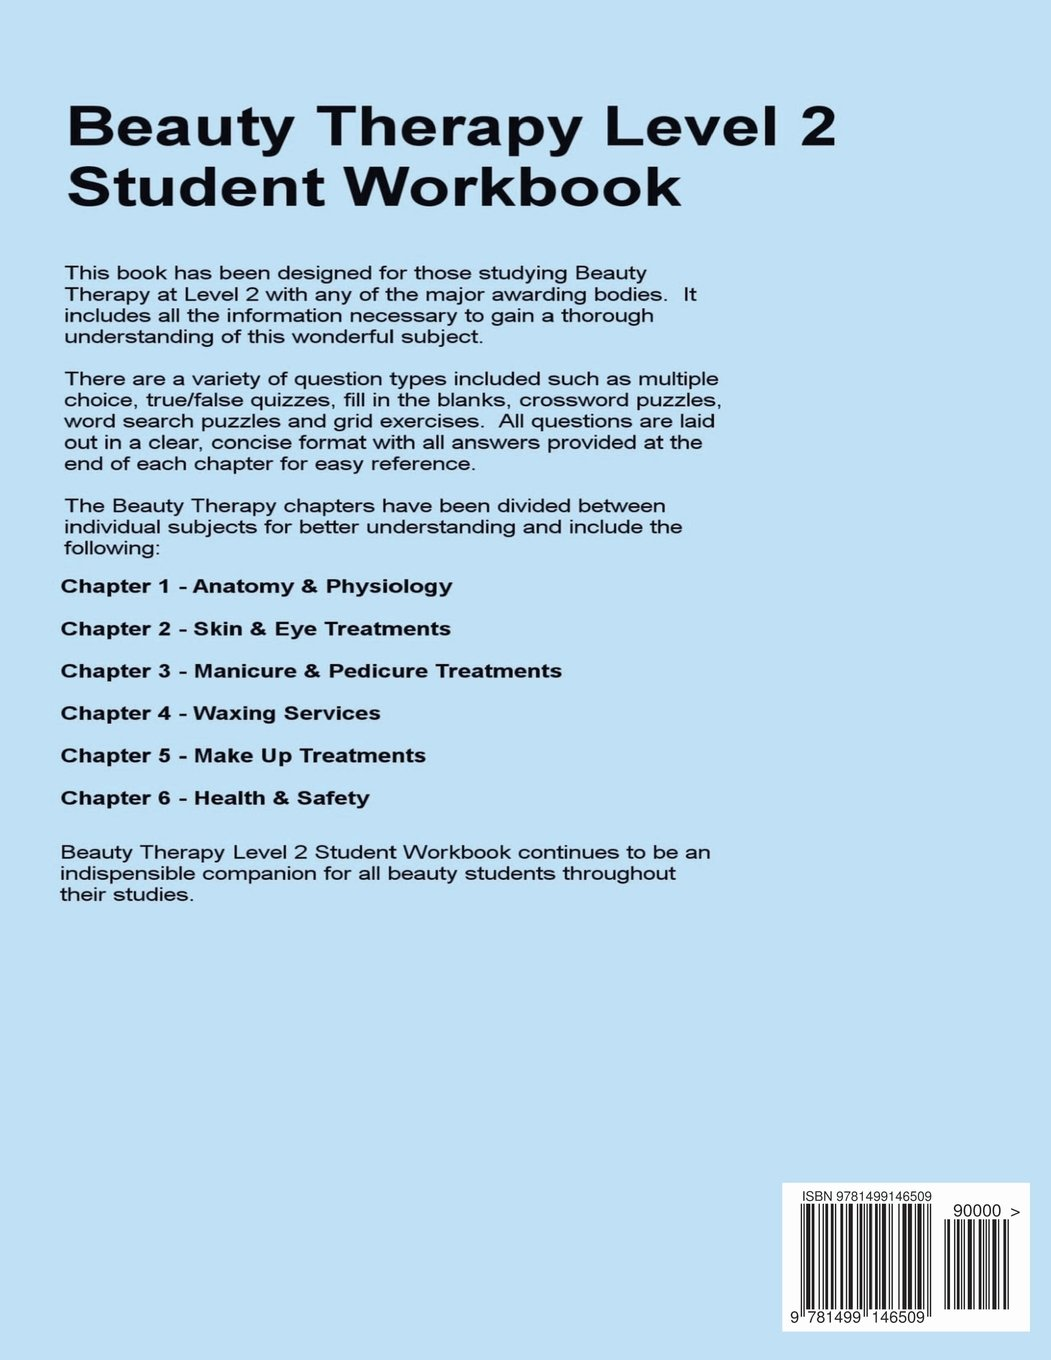 Beauty Therapy Level 2 Student Workbook: 3,000 Revision Questions ...